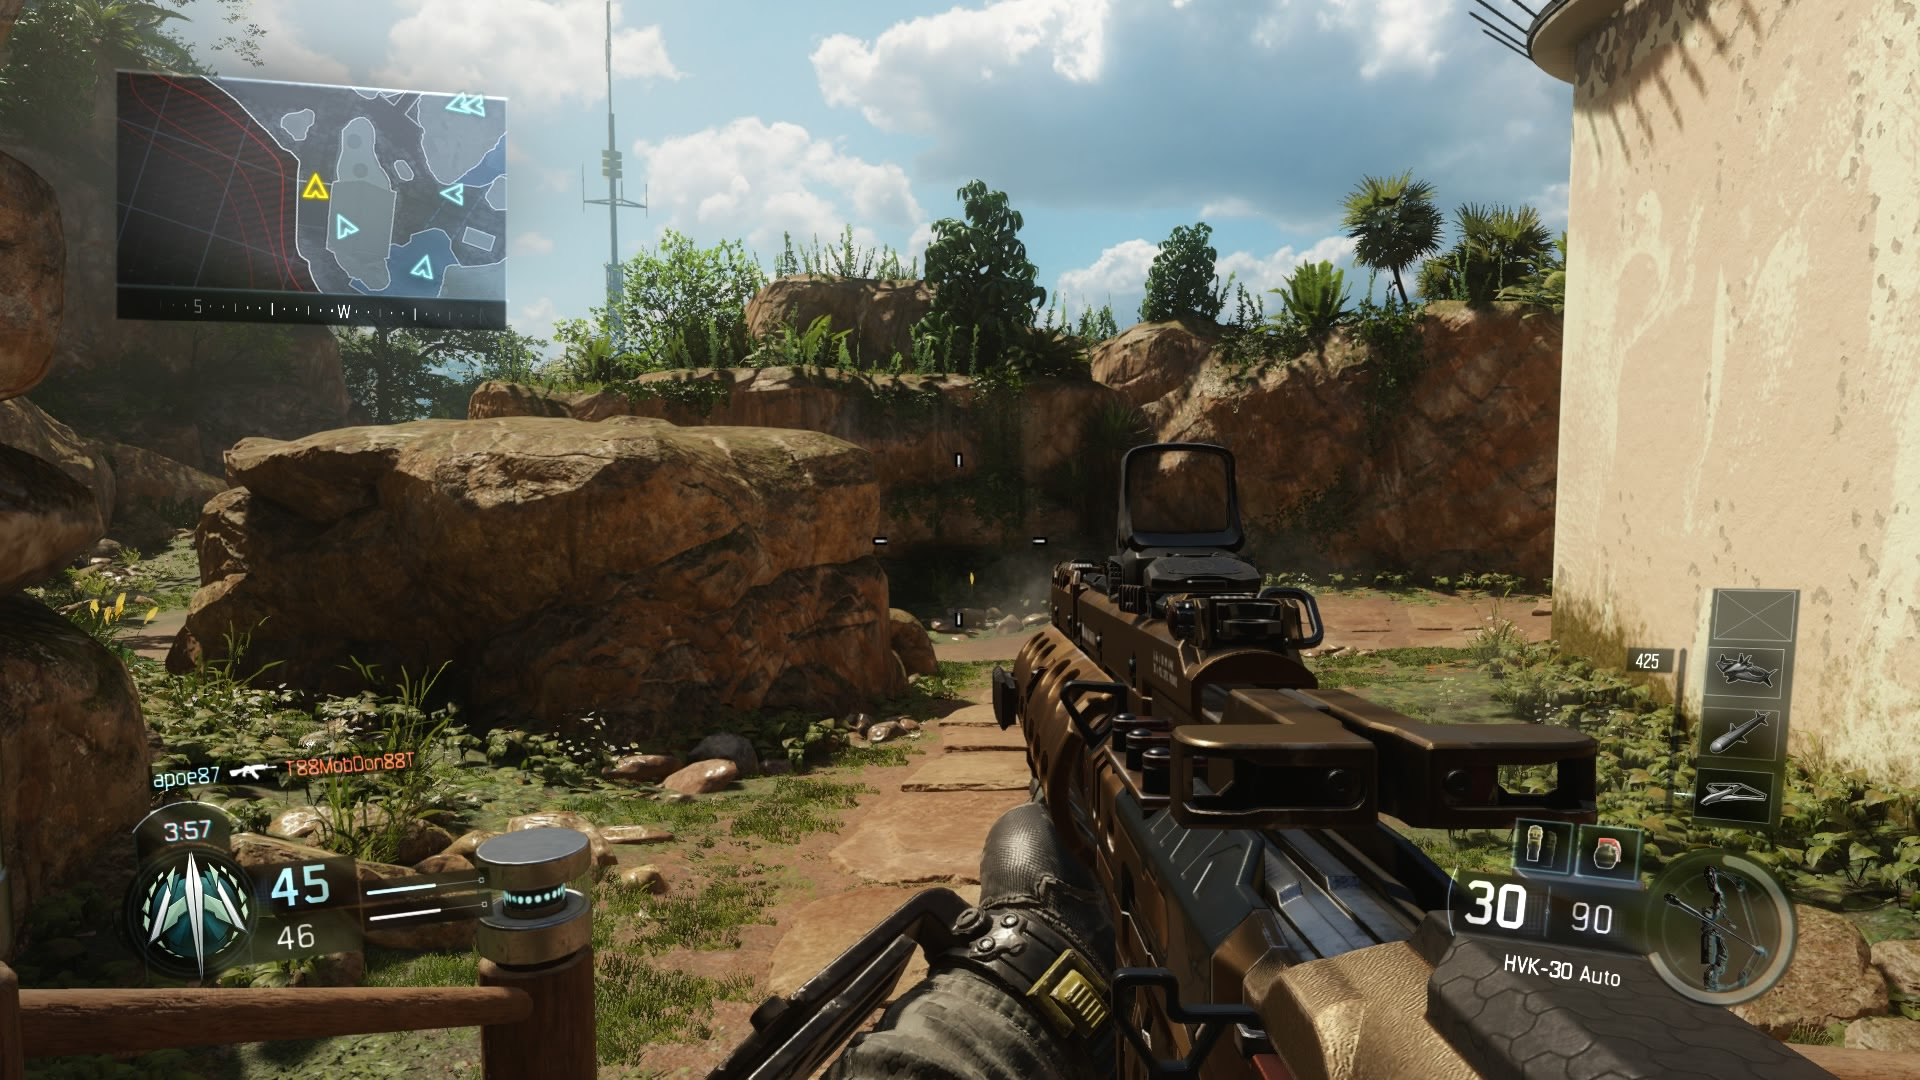 Call Of Duty Black Ops 3 Maps Call Of Duty Maps on